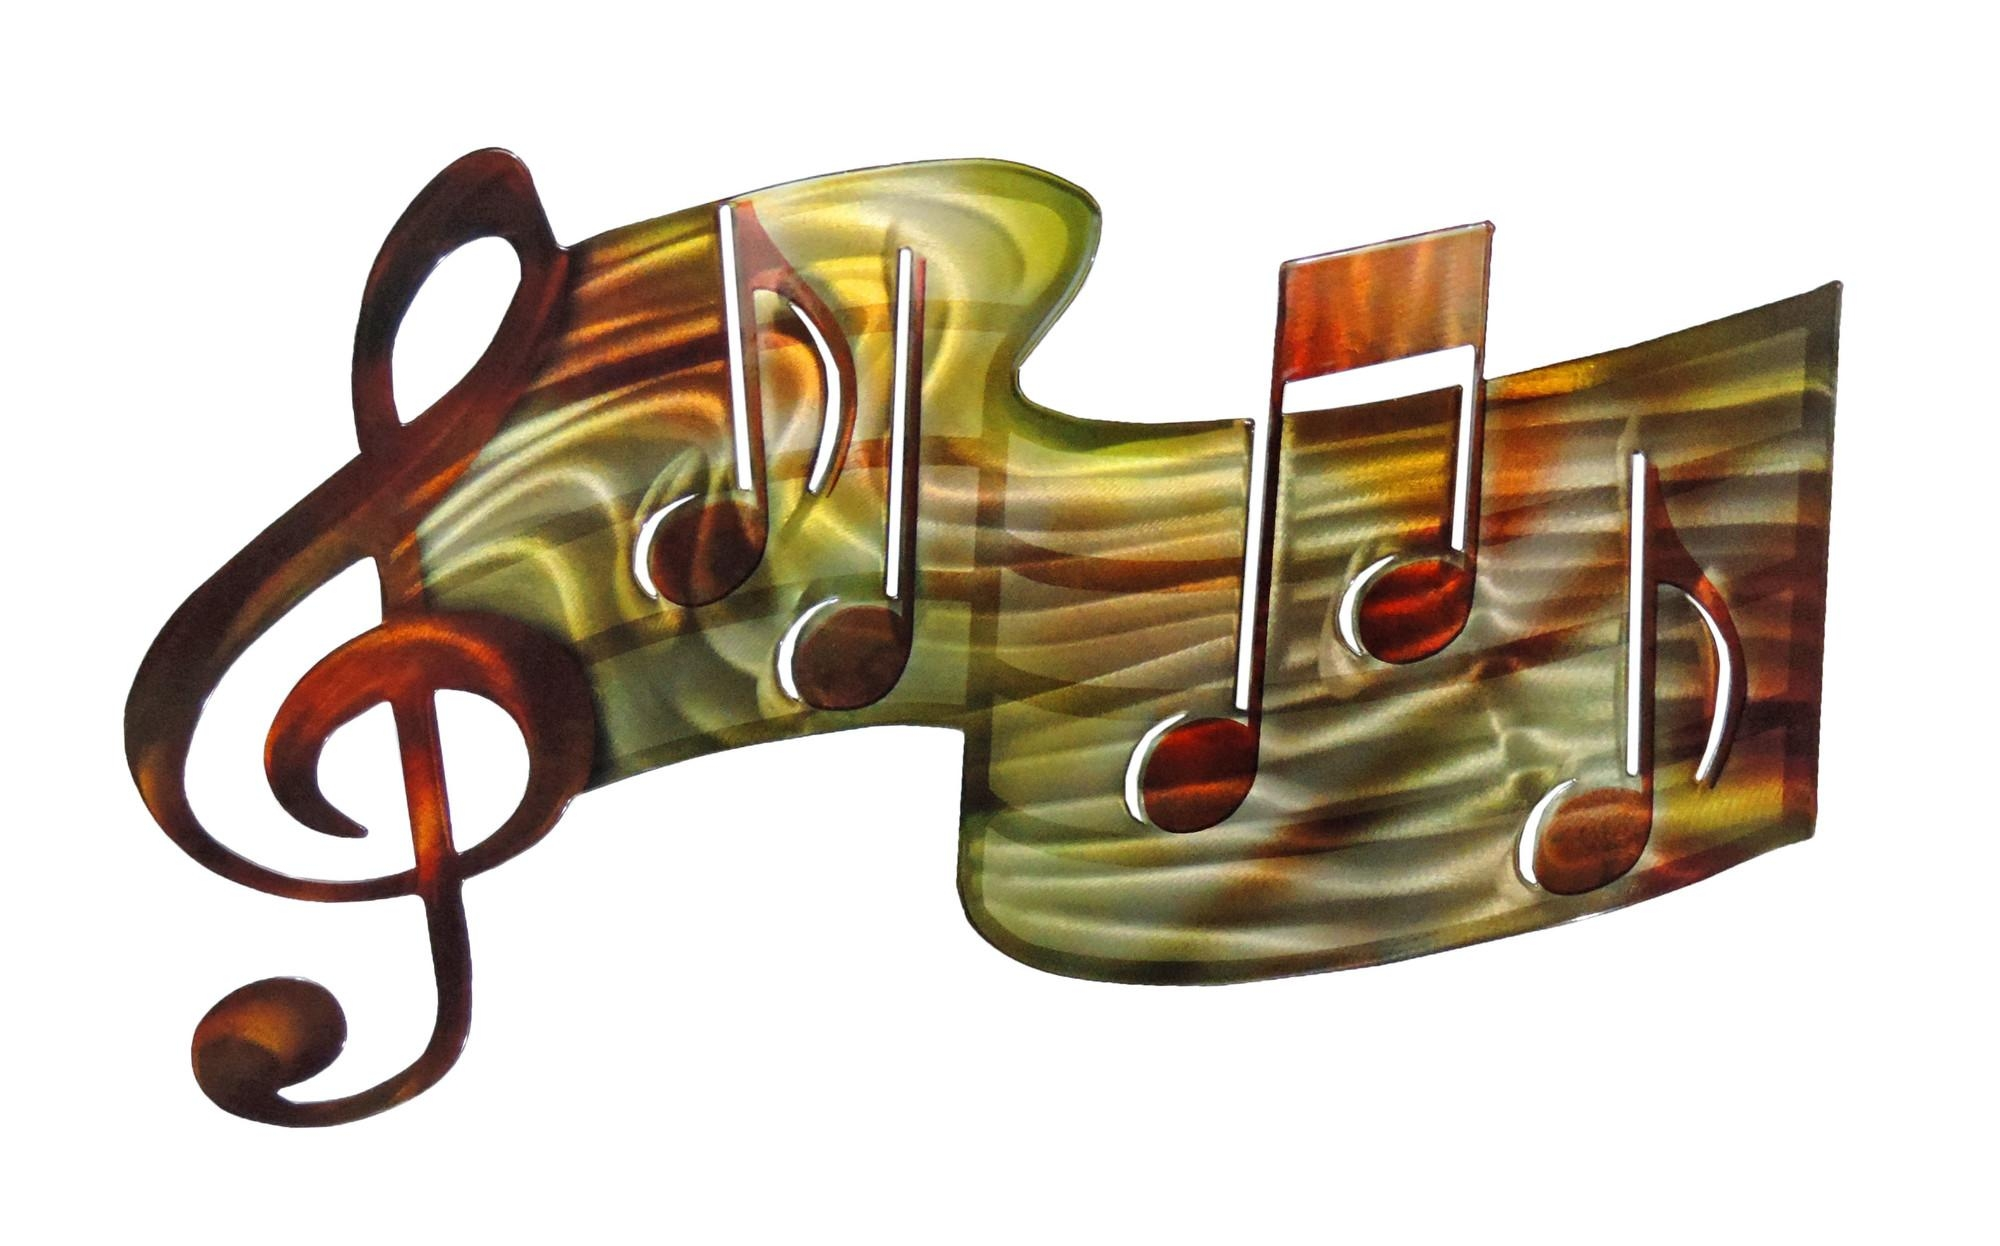 3D Music Staff – Musical Metal Wall Art Intended For Music Metal Wall Art (Image 1 of 20)